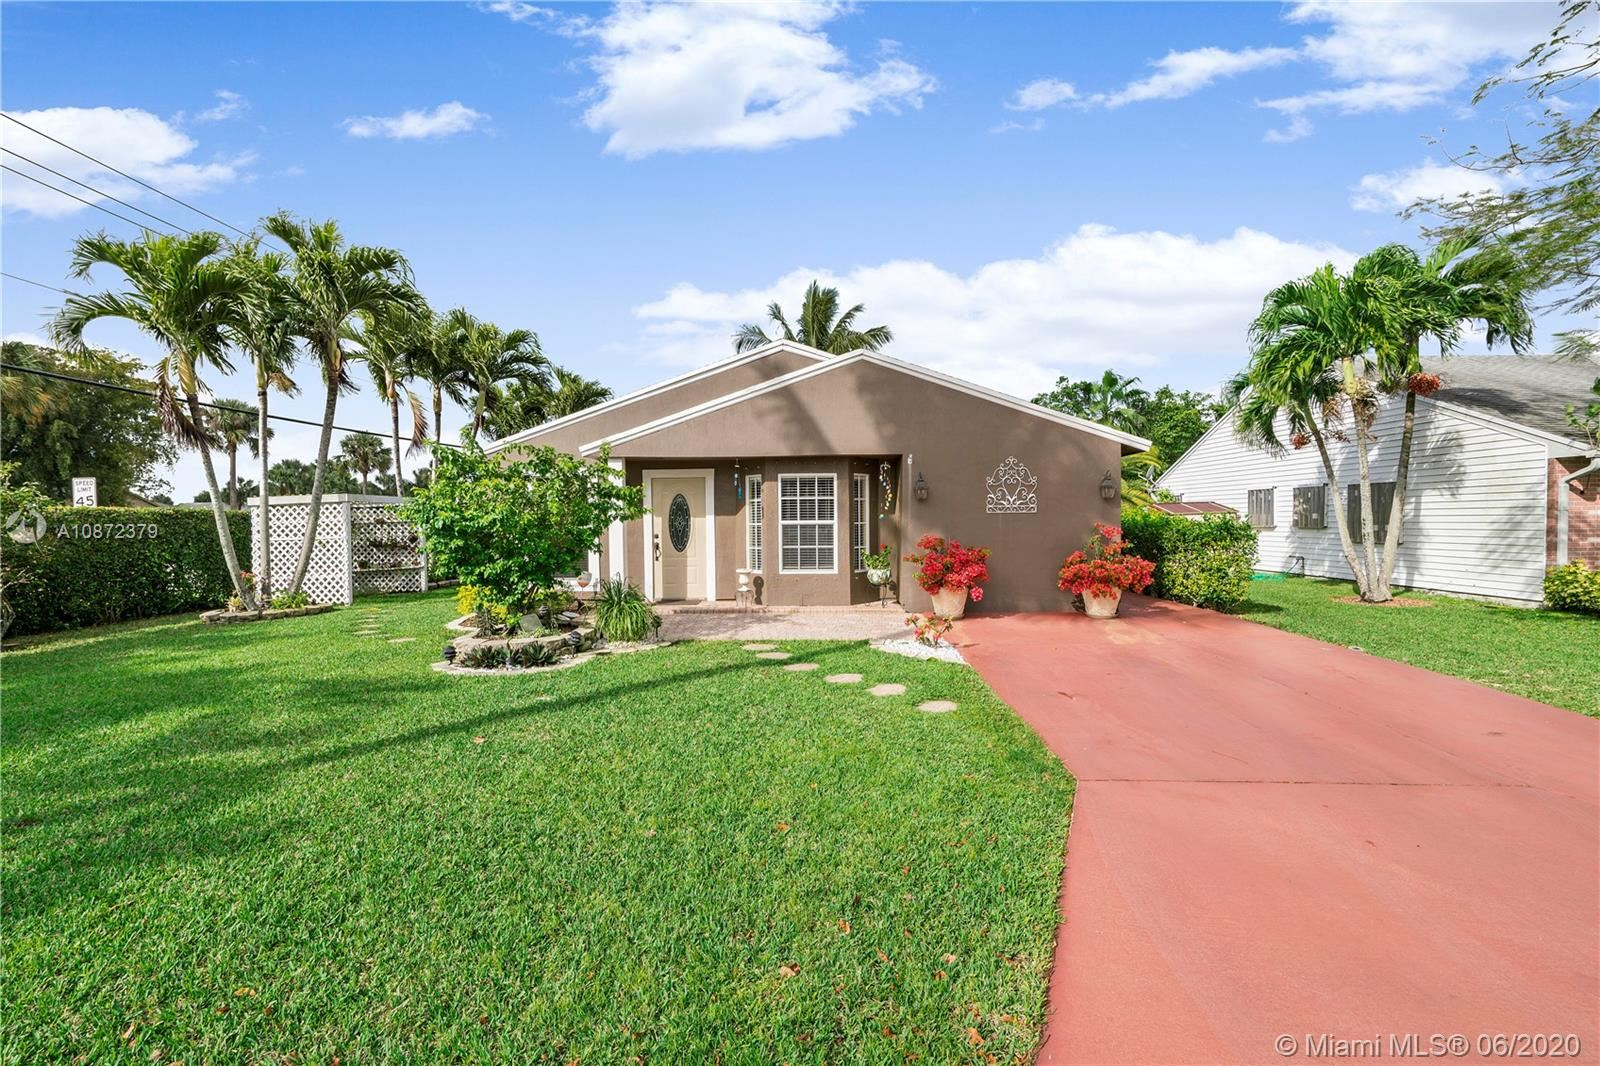 23283 Cedar Hollow Way, Boca Raton, FL 33433 - #: A10872379